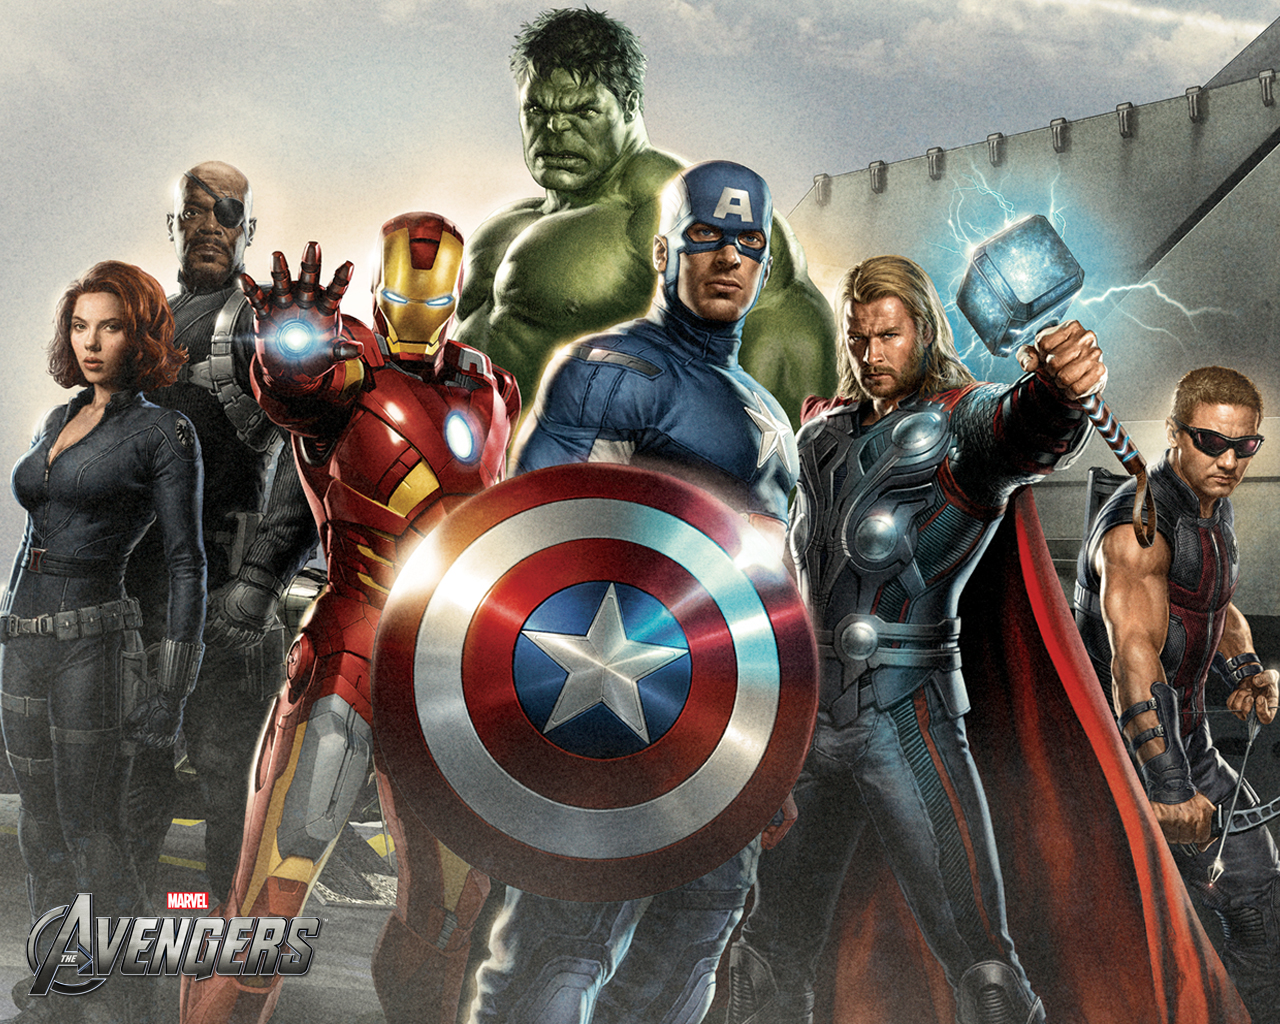 Publicado por CM Skywalker Etiquetas: Avengers , Reviews